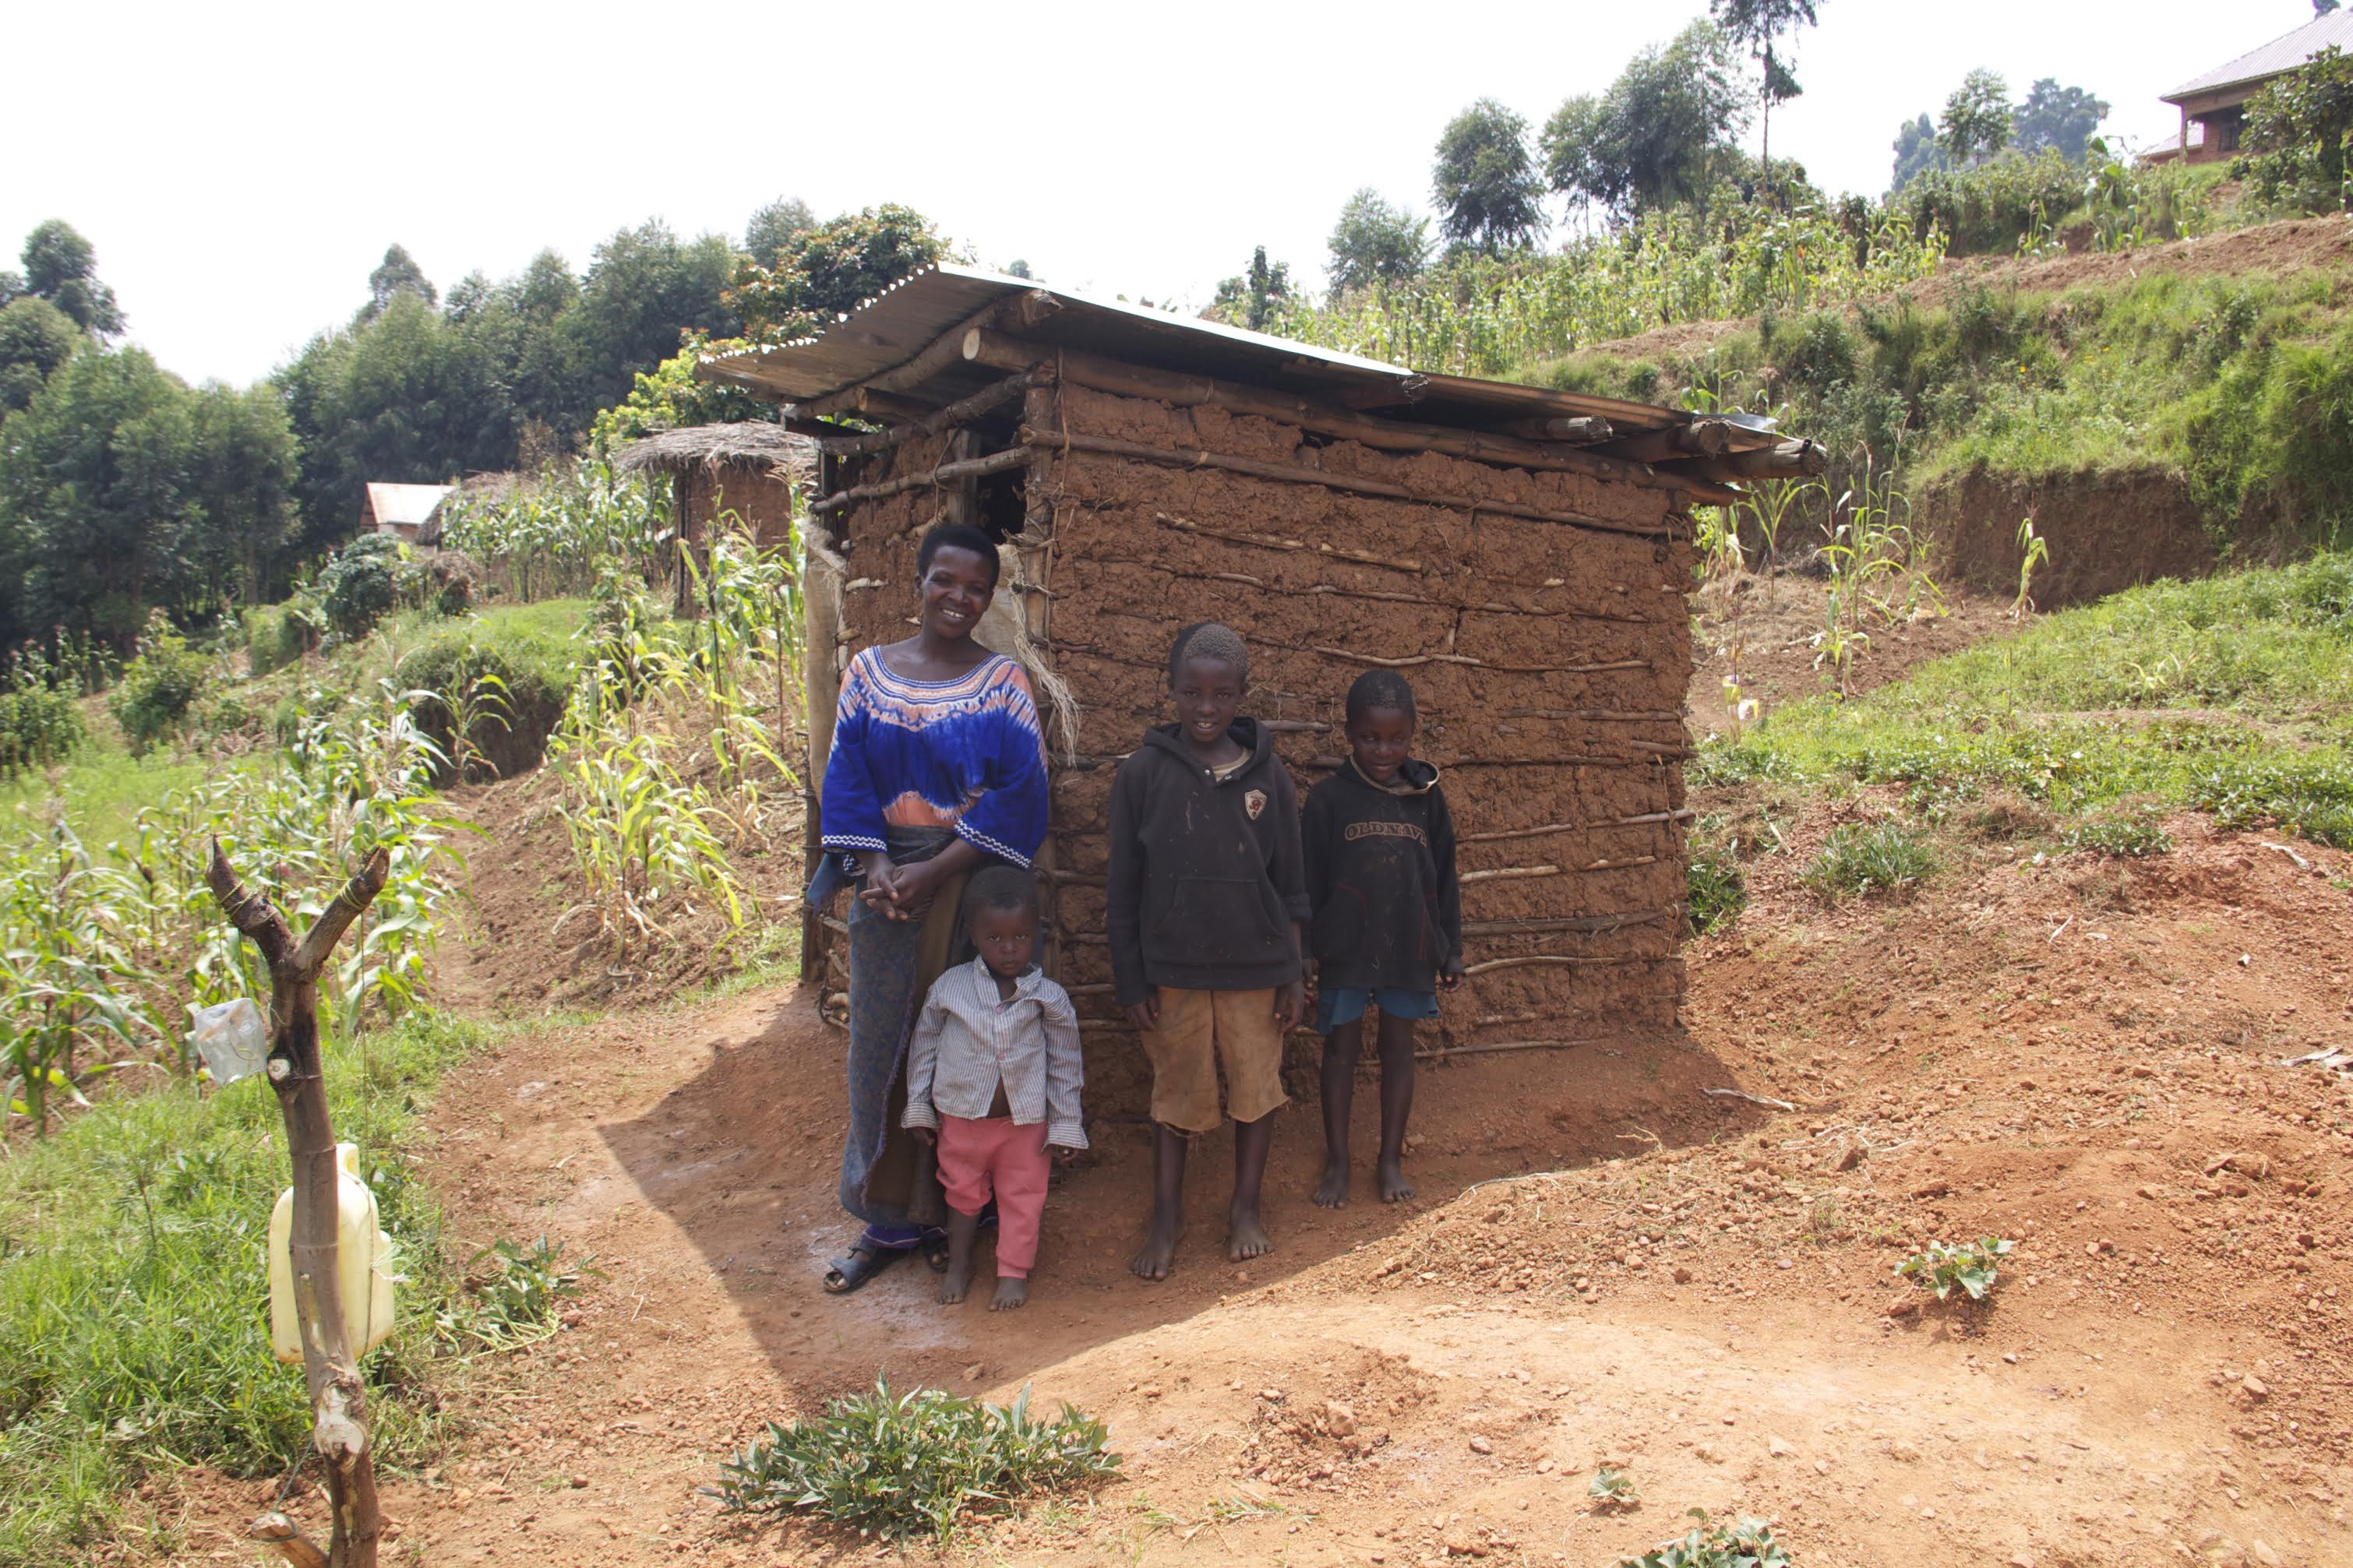 Justine and her family in Uganda with their local latrine